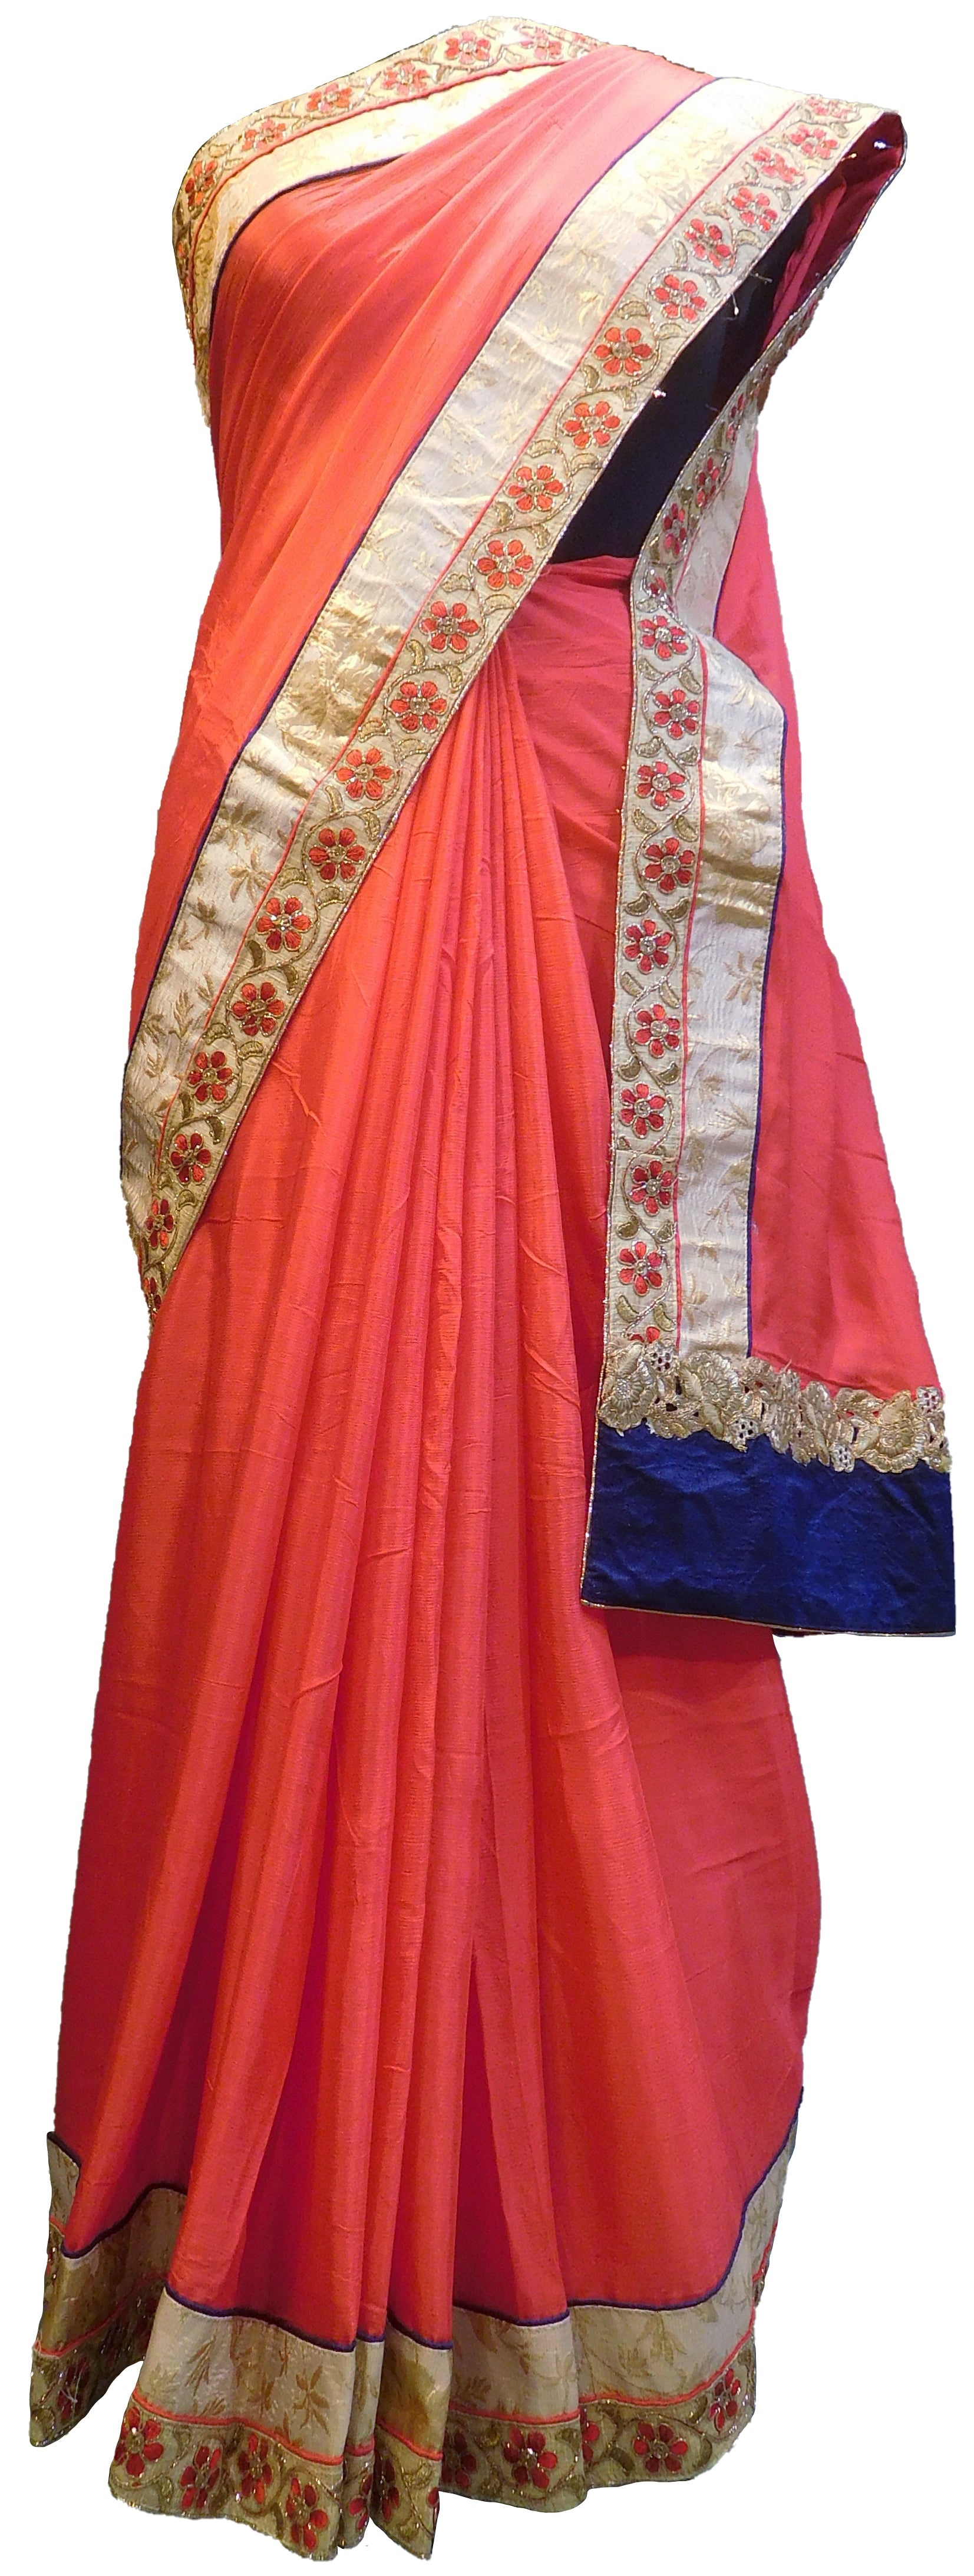 SMSAREE Red Designer Wedding Partywear Crepe (Chinon) Thread & Zari Hand Embroidery Work Bridal Saree Sari With Blouse Piece E496